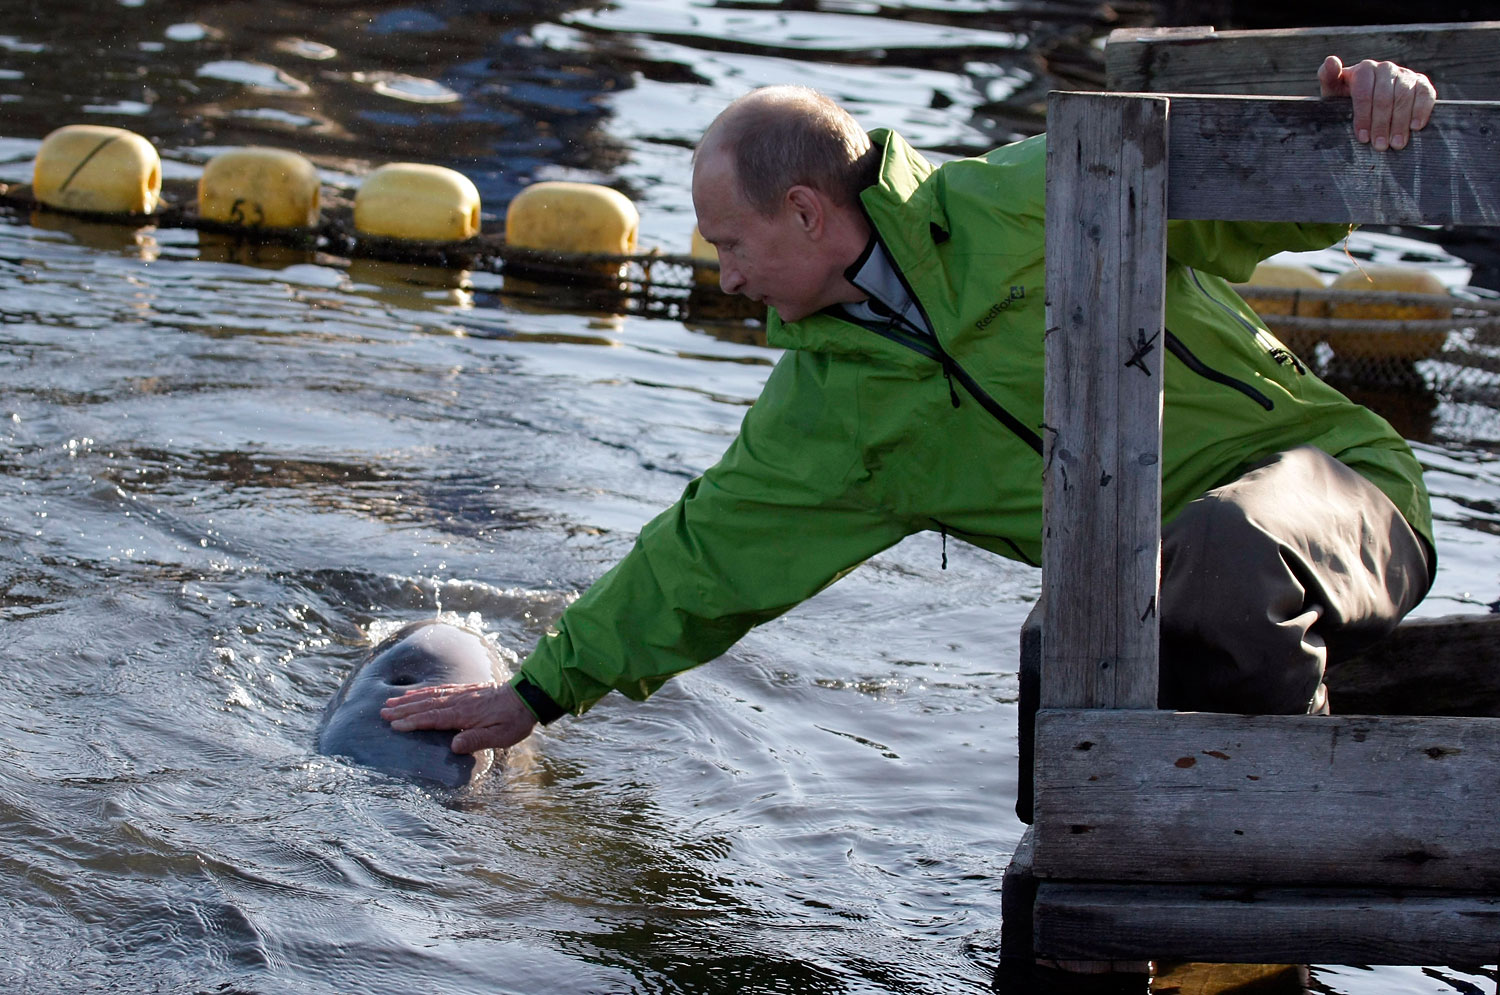 Putin strokes a beluga whale named Dasha at a conservation facility in Khabarovsk, July 31, 2009.